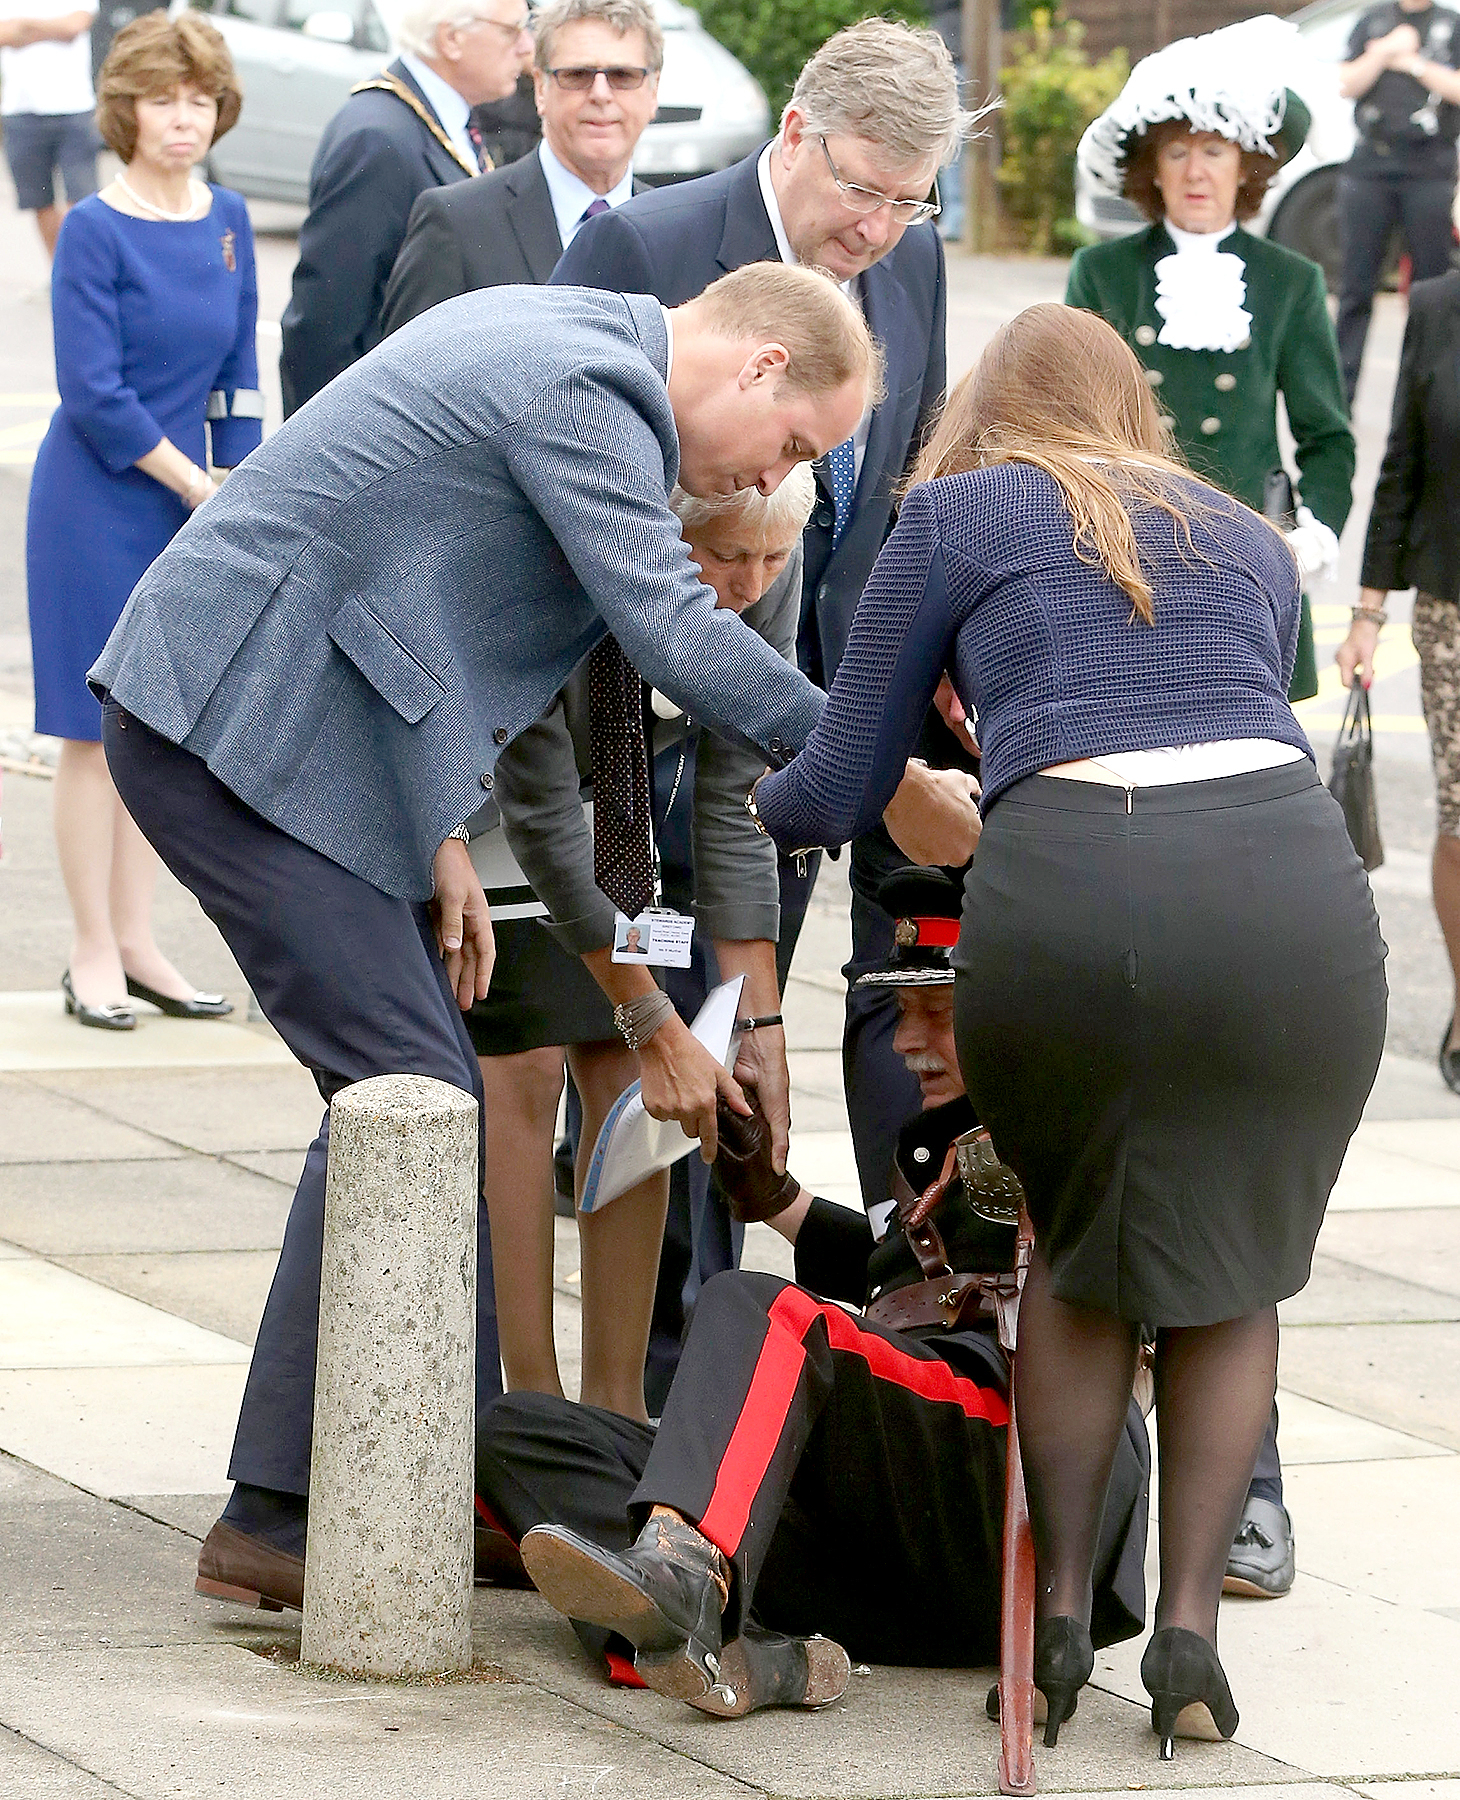 Prince William, Duke of Cambridge rushes to help Vice Lord Lieutenant of Essex Jonathon Douglas-Hughes who fell backwards over a bollard as they arrive at Steward's Academy on September 16, 2016 in Harlow, England.